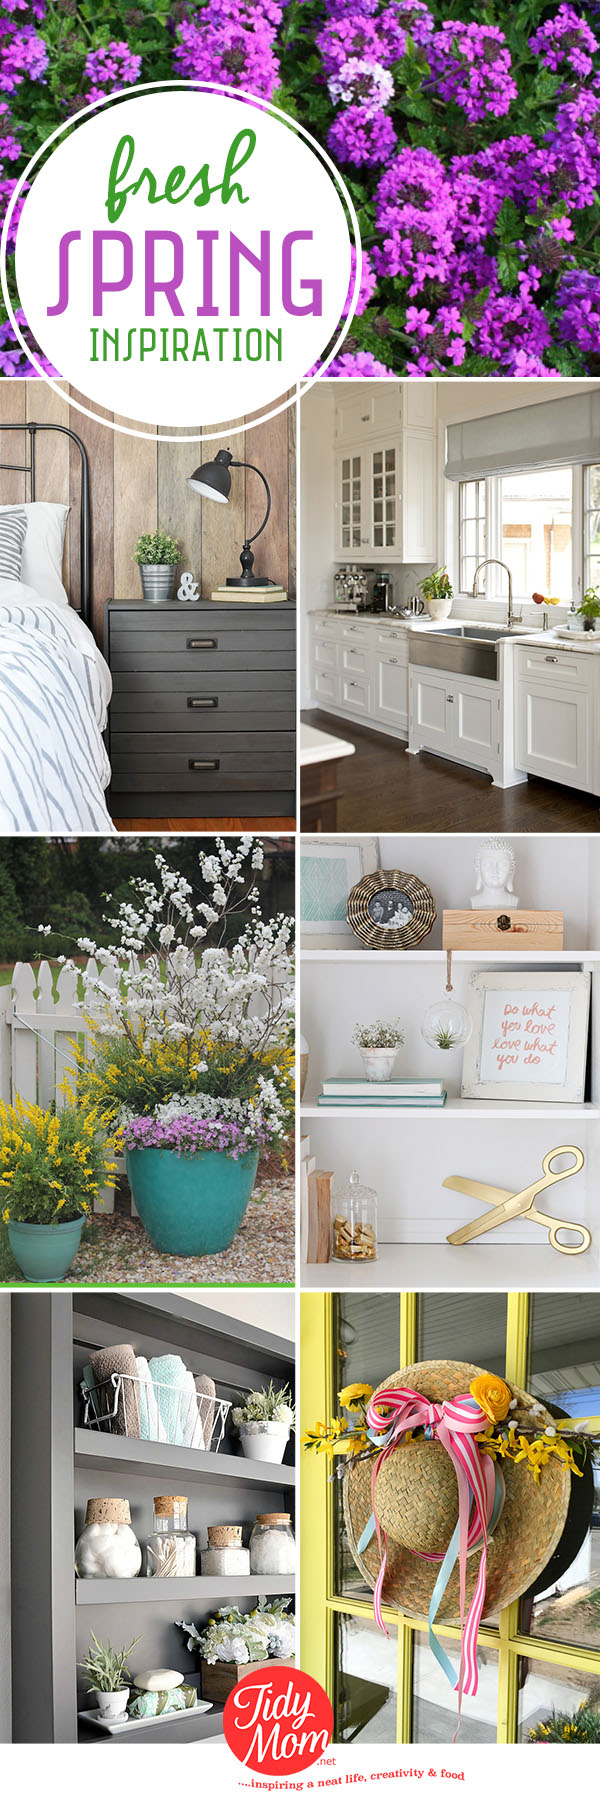 Fresh Spring Inspiration for your home. From the garden and front door, to bathrooms and kitchens, be inspired by these fresh ideas at TidyMom.net